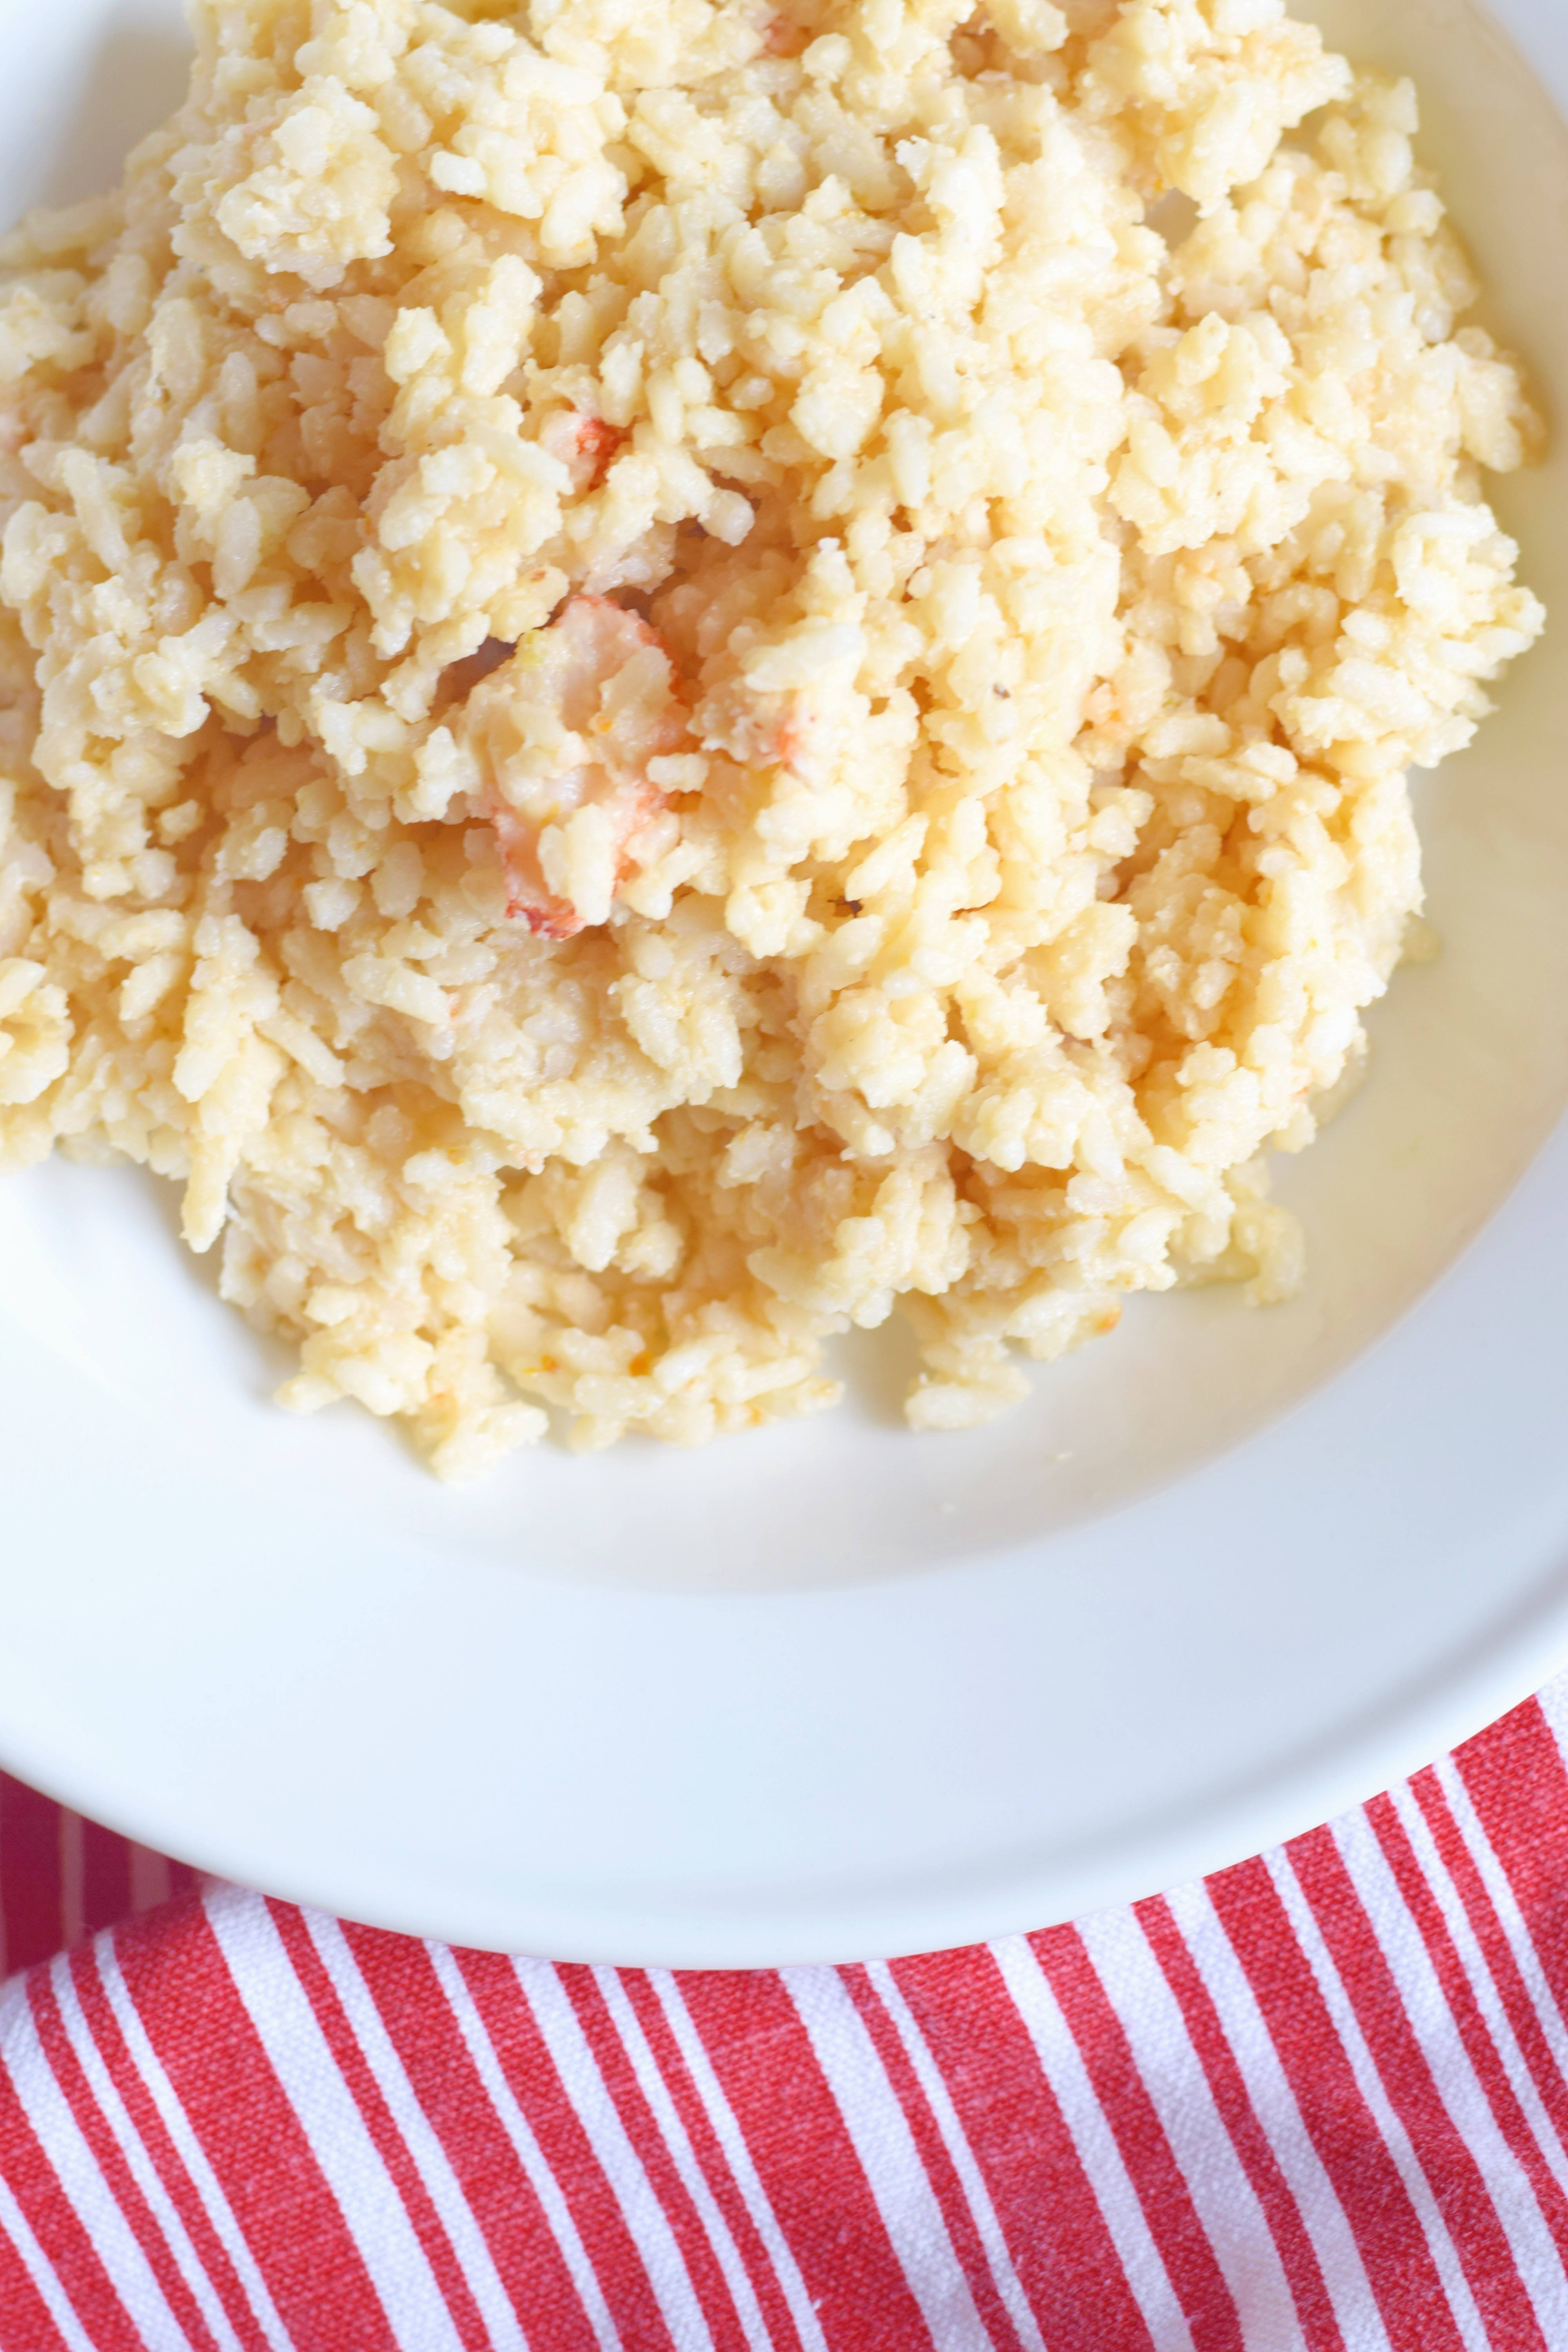 Dairy Free Lobster Risotto - Seafood Risotto Recipe - Easy Risotto Recipe - Gluten Free Risotto - Dairy Free Dinner Idea - Lobster Risotto Recipe - Easy Risotto Ingredients - Seafood Dinner Recipe - Communikait by Kait Hanson